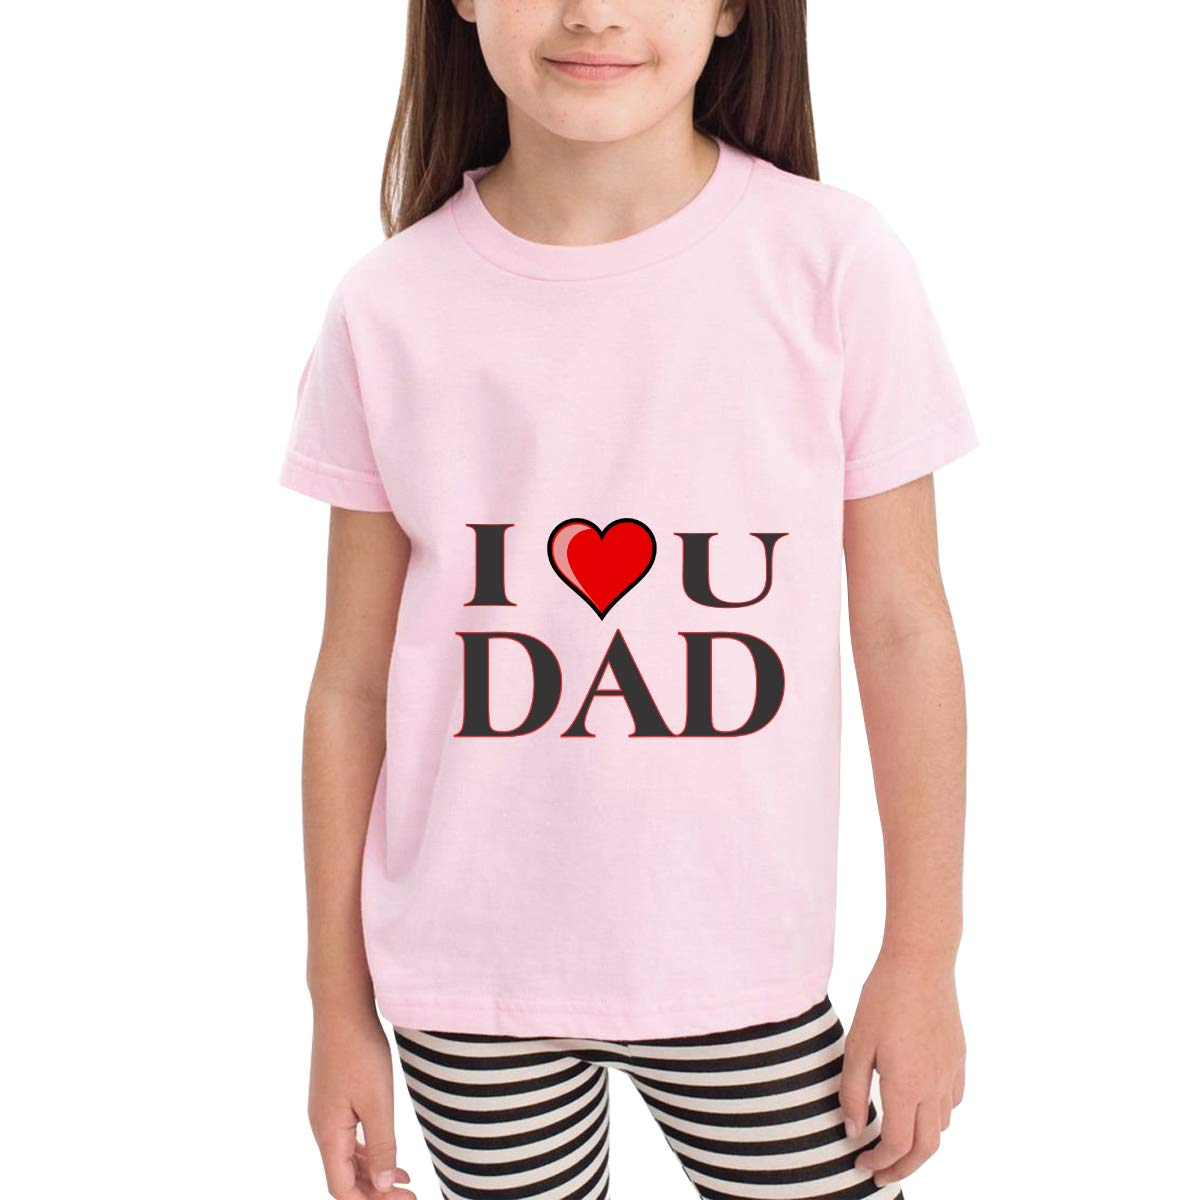 I Love You Dad 100/% Cotton Toddler Baby Boys Girls Kids Short Sleeve T Shirt Top Tee Clothes 2-6 T